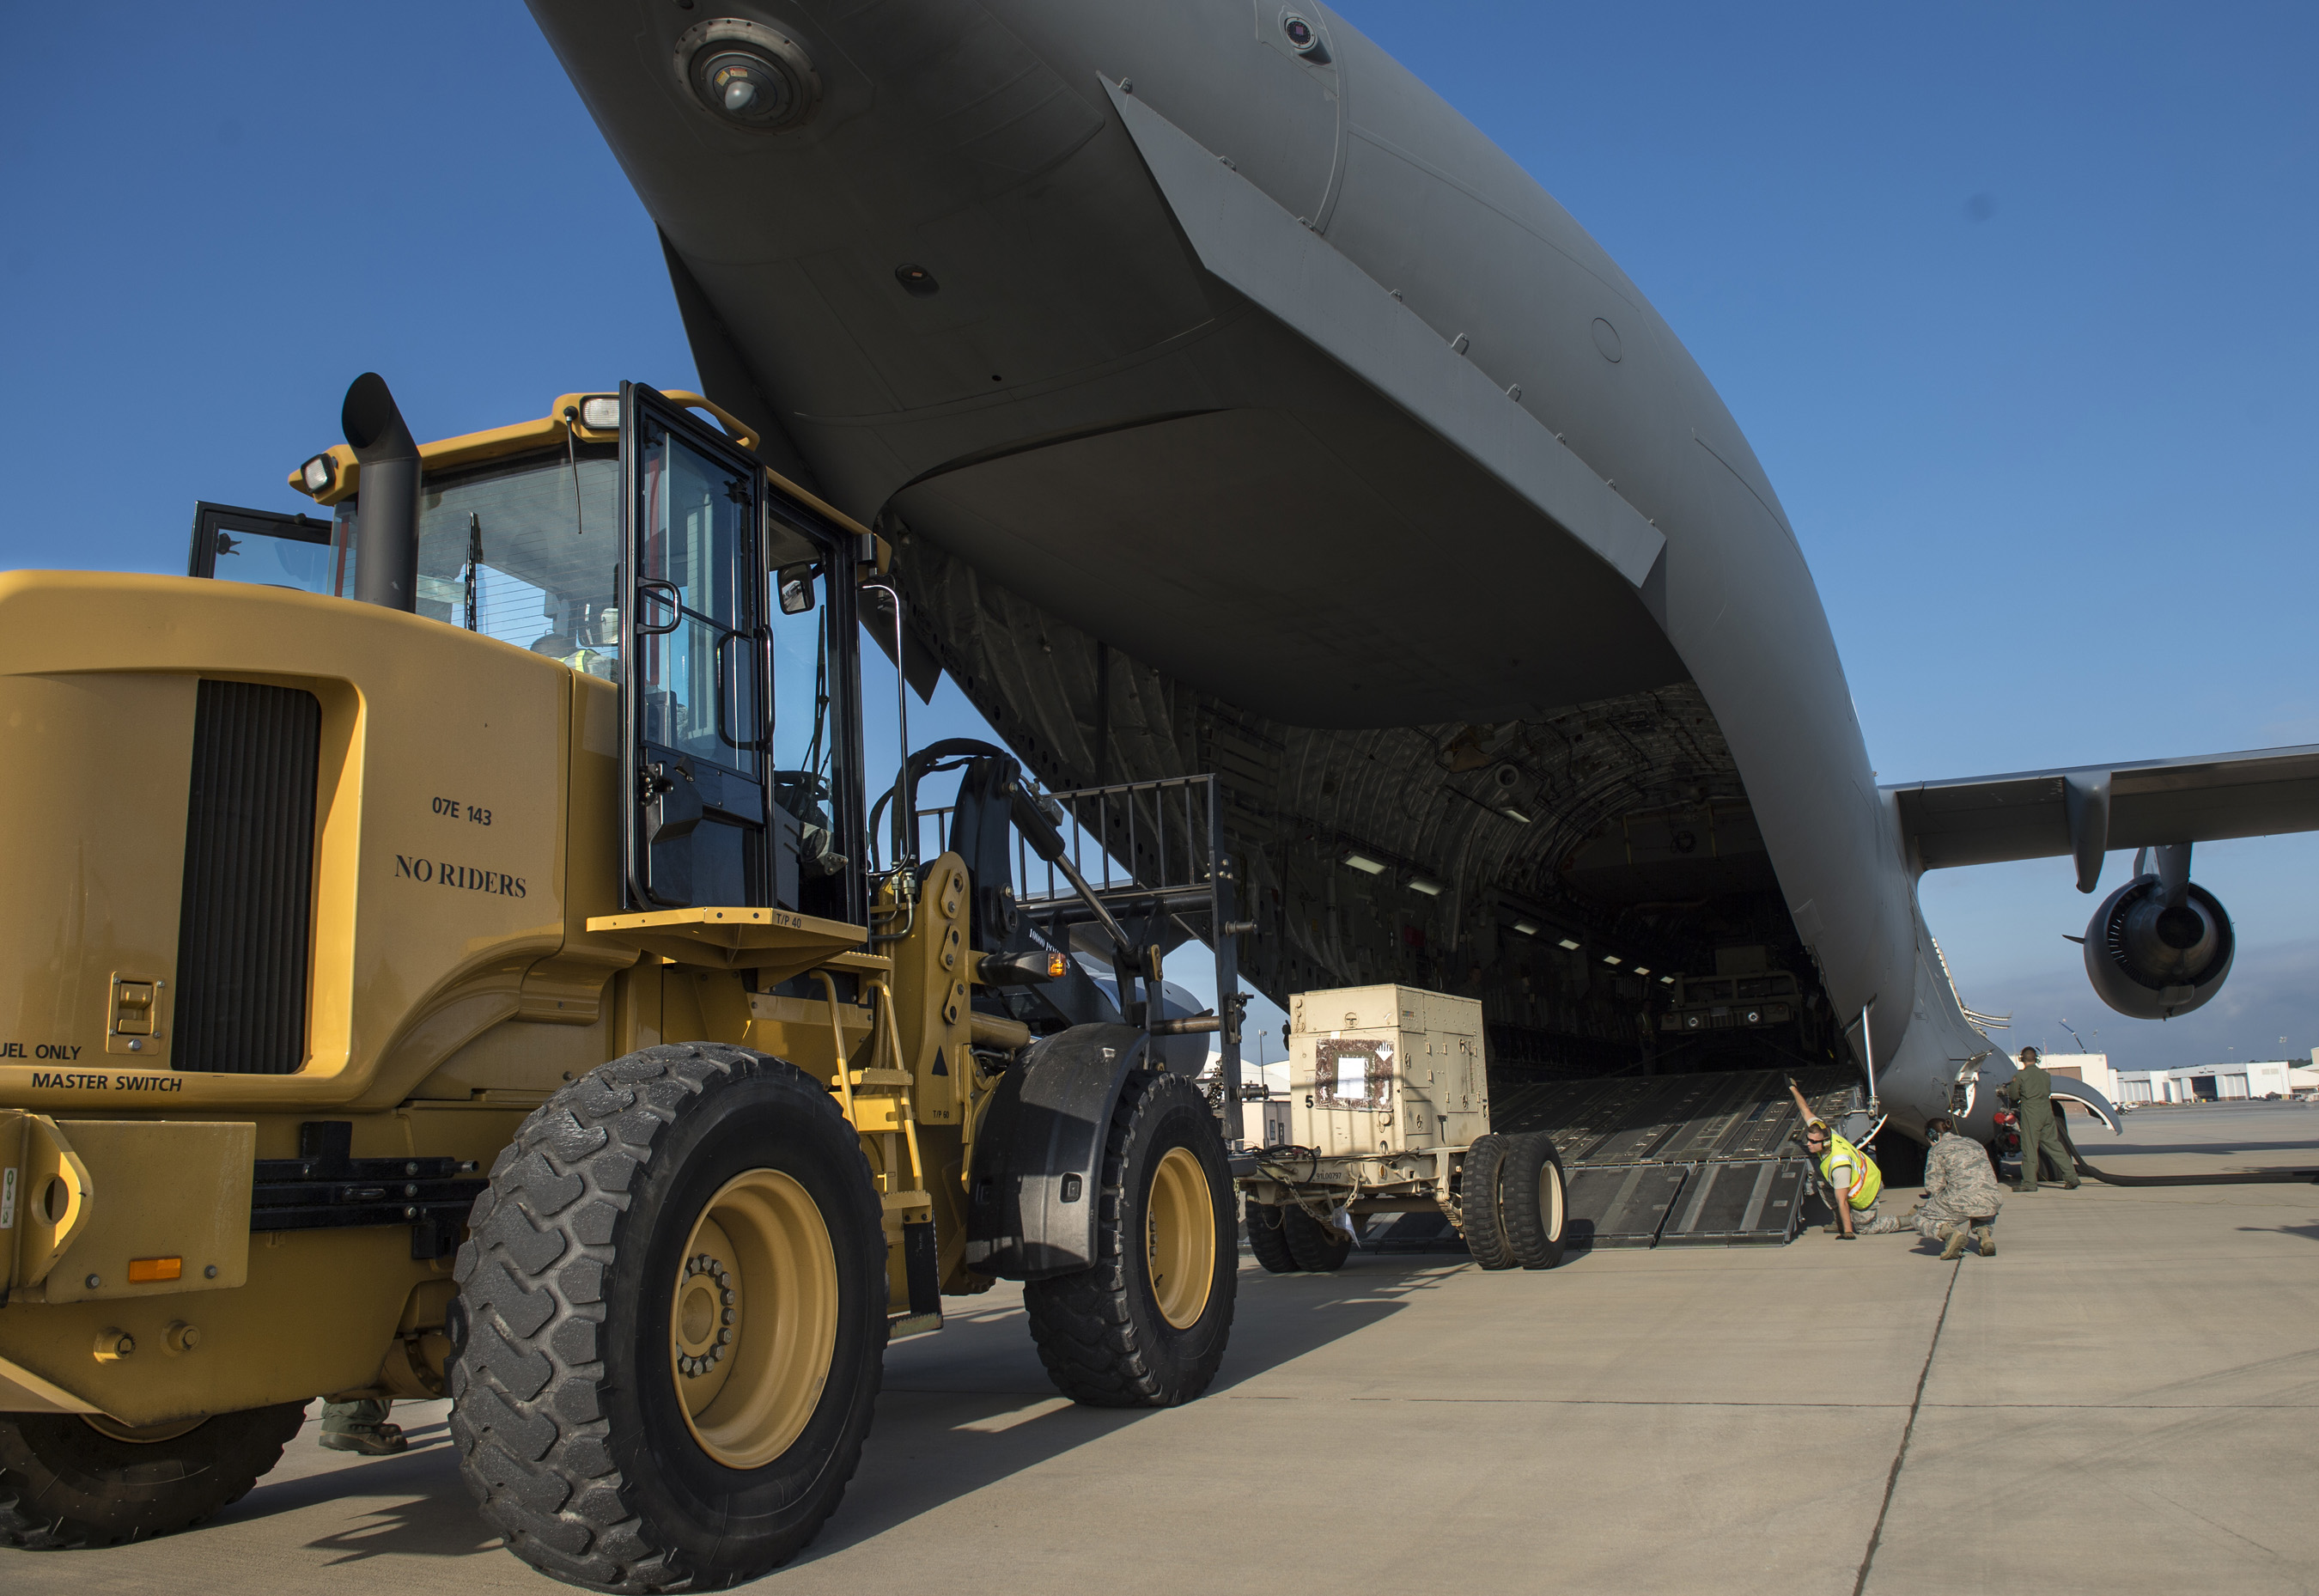 The 78th Logistics Readiness Squadron loads a generator onto a C-17 Globe Master II in preparation to provide humanitarian aid in Ecuador on April 26, 2016, at Robins Air Force Base, Ga. (Airman 1st Class Justin Parsons/U.S. Air Force)